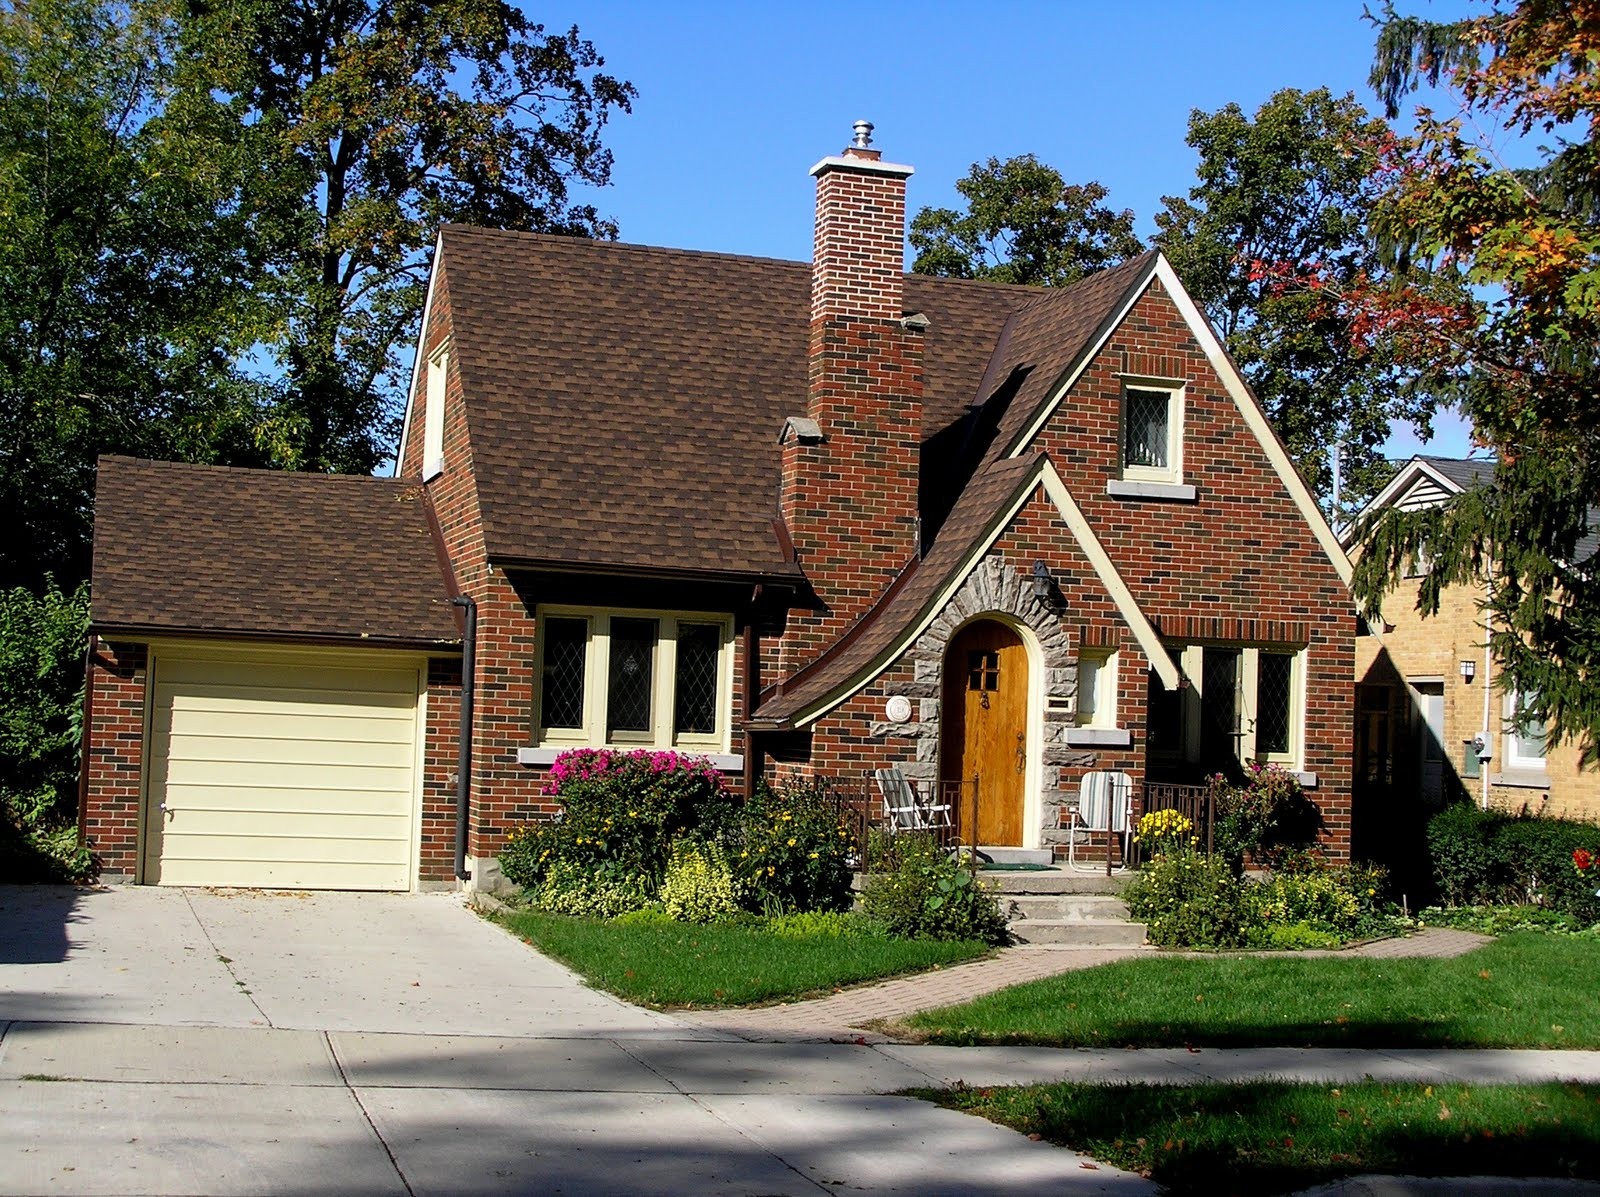 A field guide to building watching august 2009 - What is a bungalow style house ...